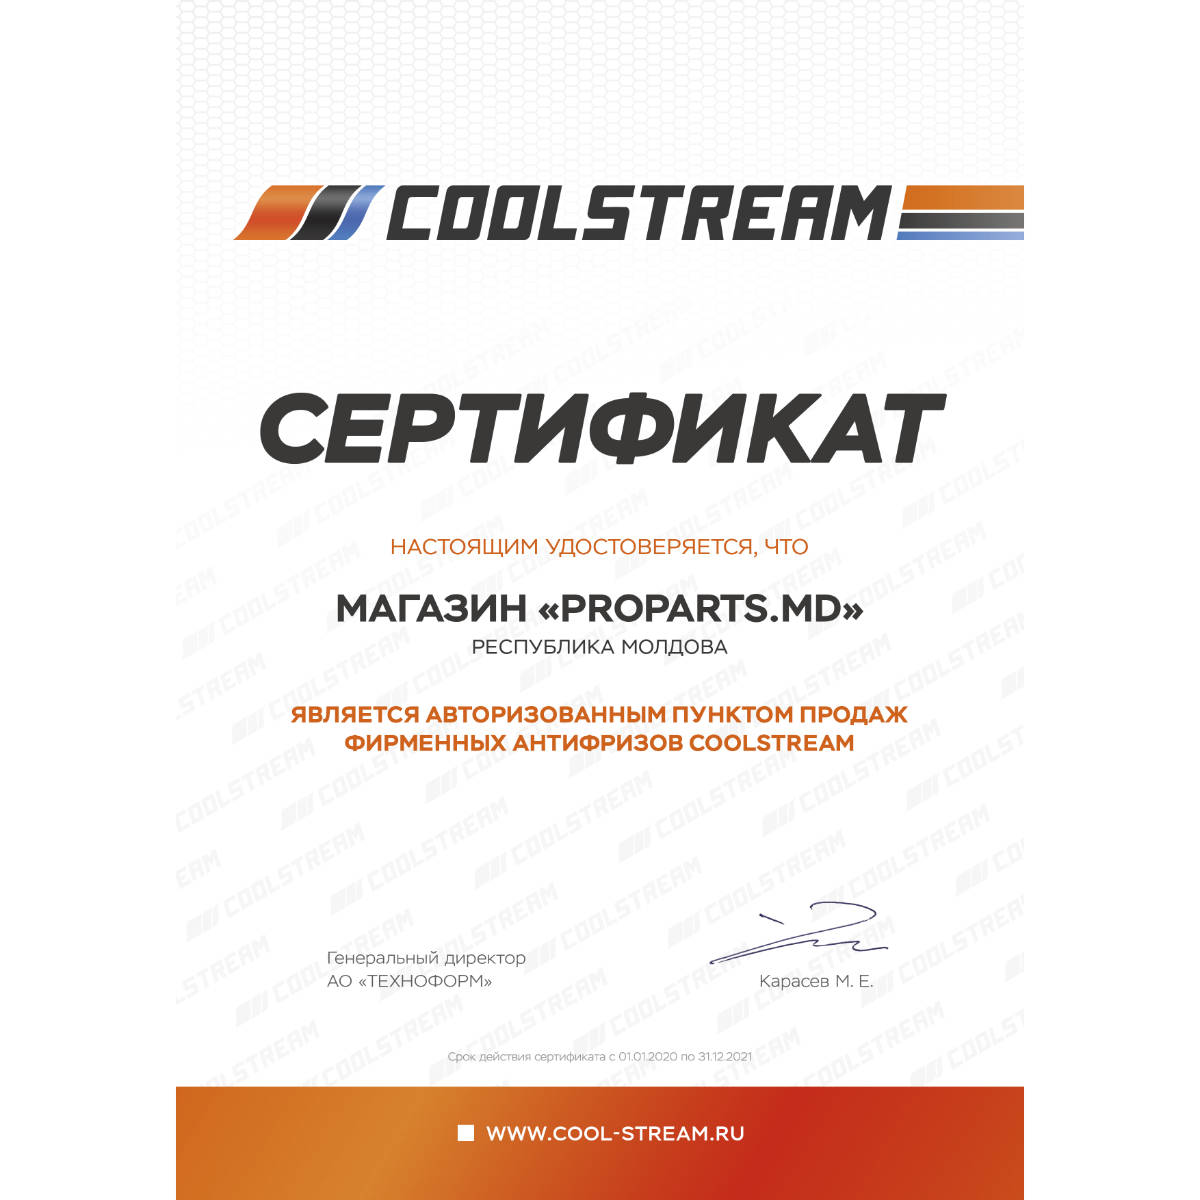 Coolstream Cerificate ProParts.md